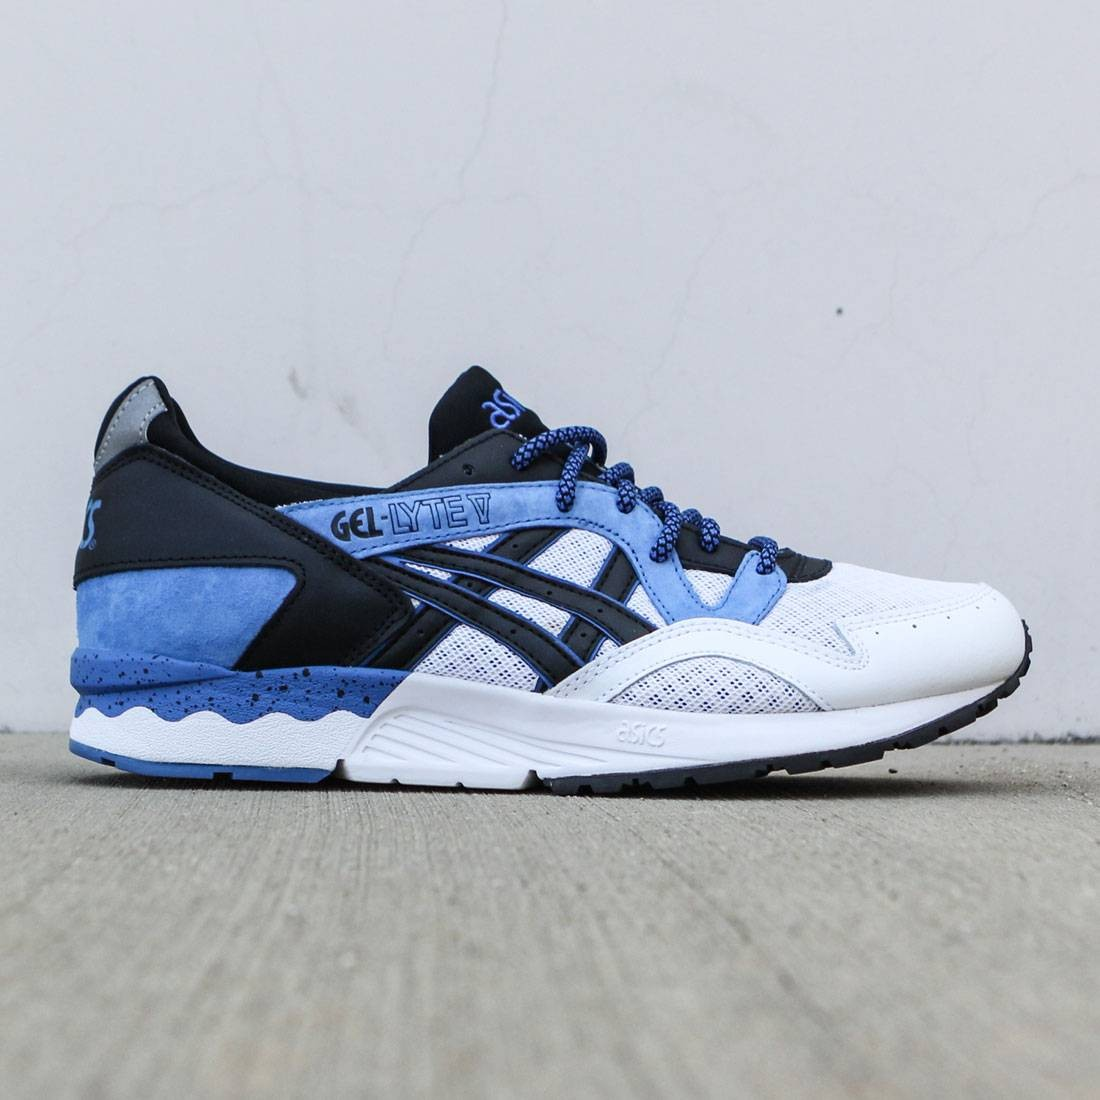 Buy classic asics   Up to OFF65% Discounted 254c000ea